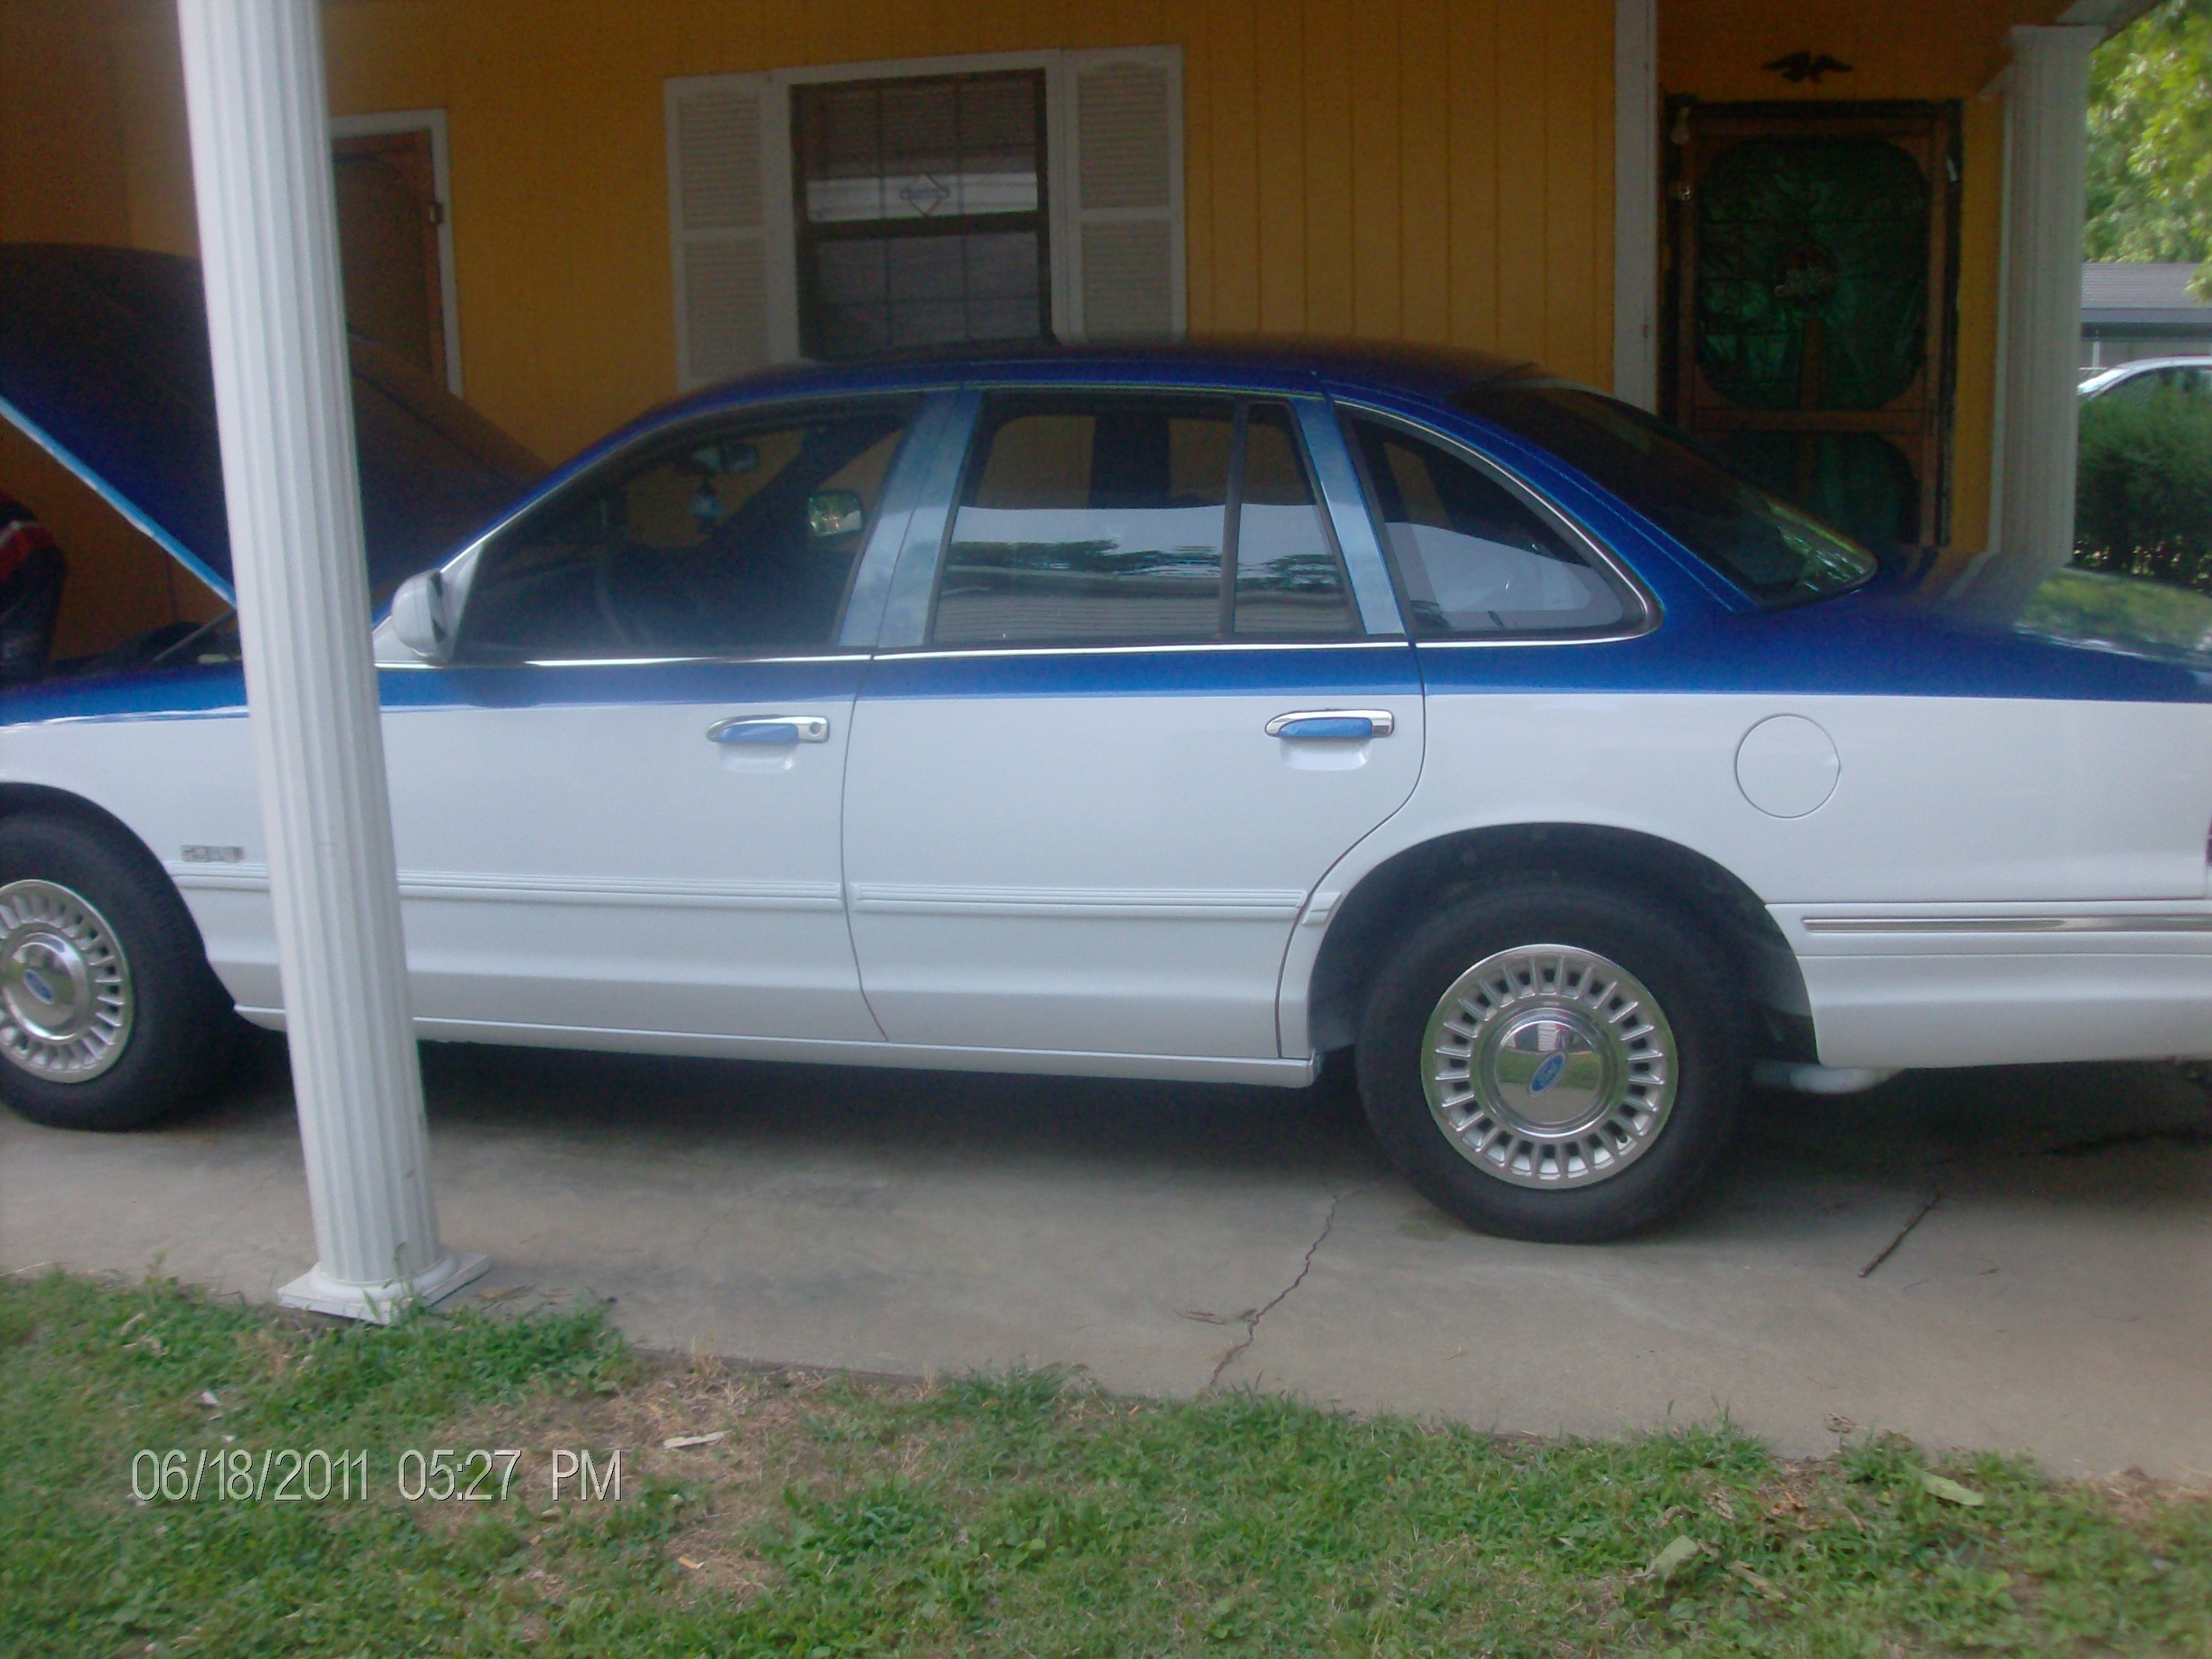 Crenshaw85's 1997 Ford Crown Victoria